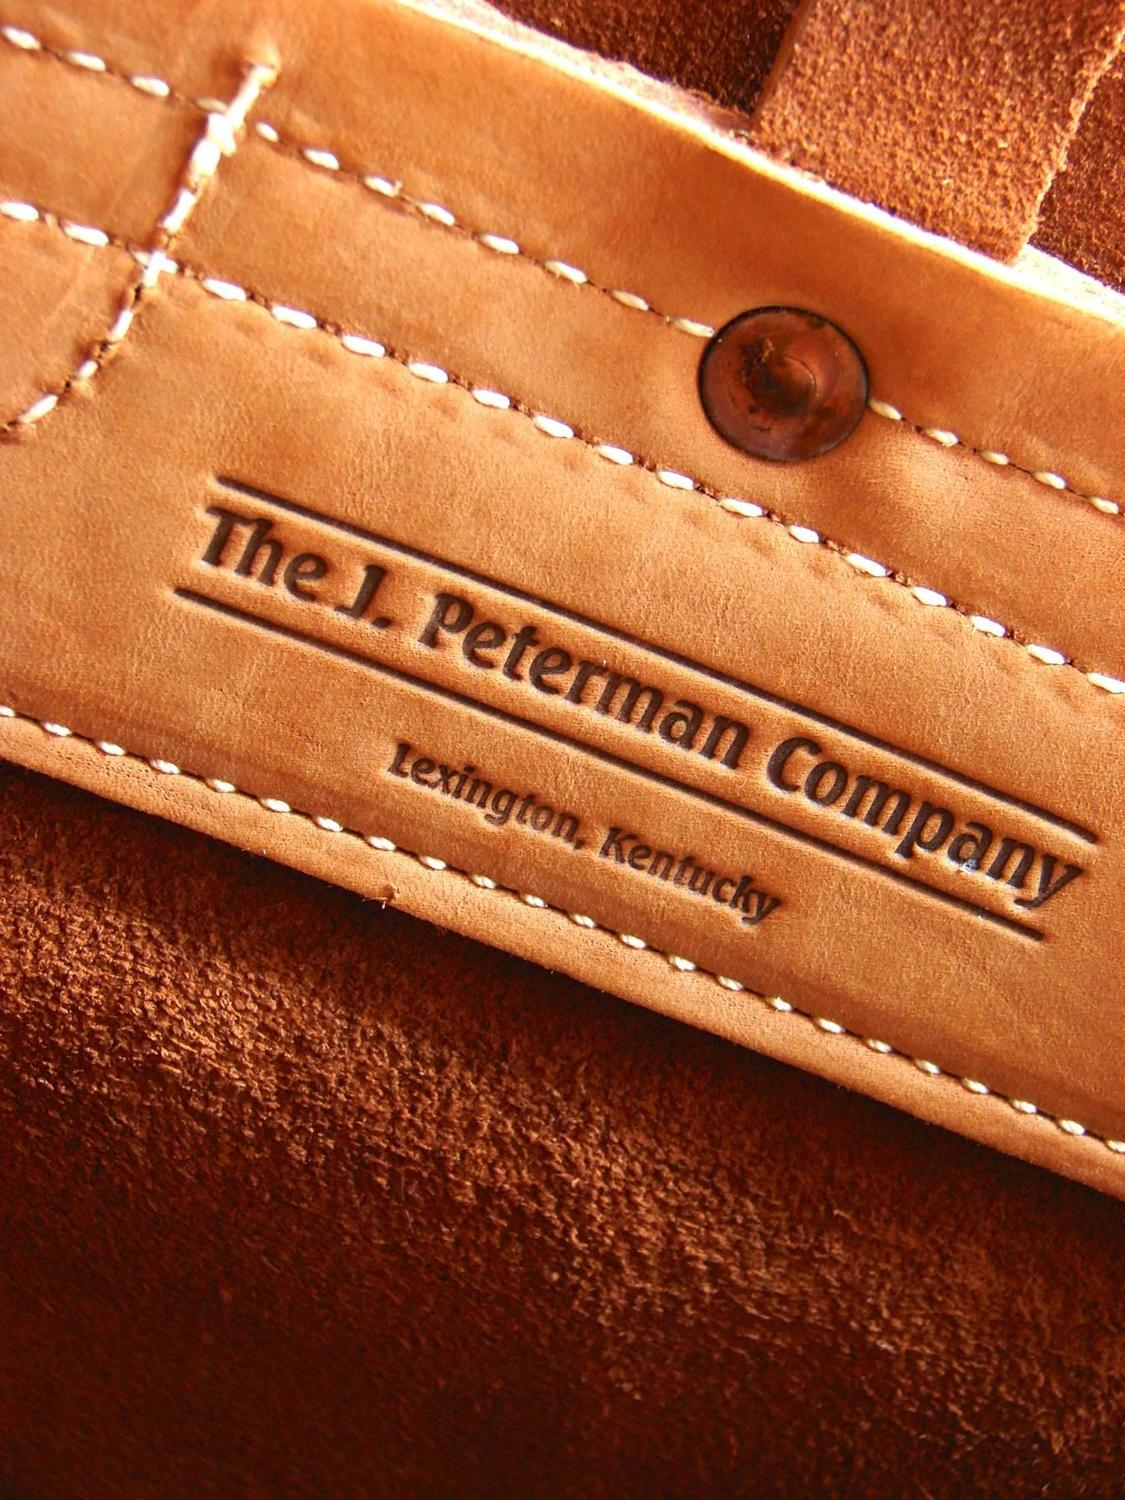 The J Peterman Company The Counterfeit Large Leather